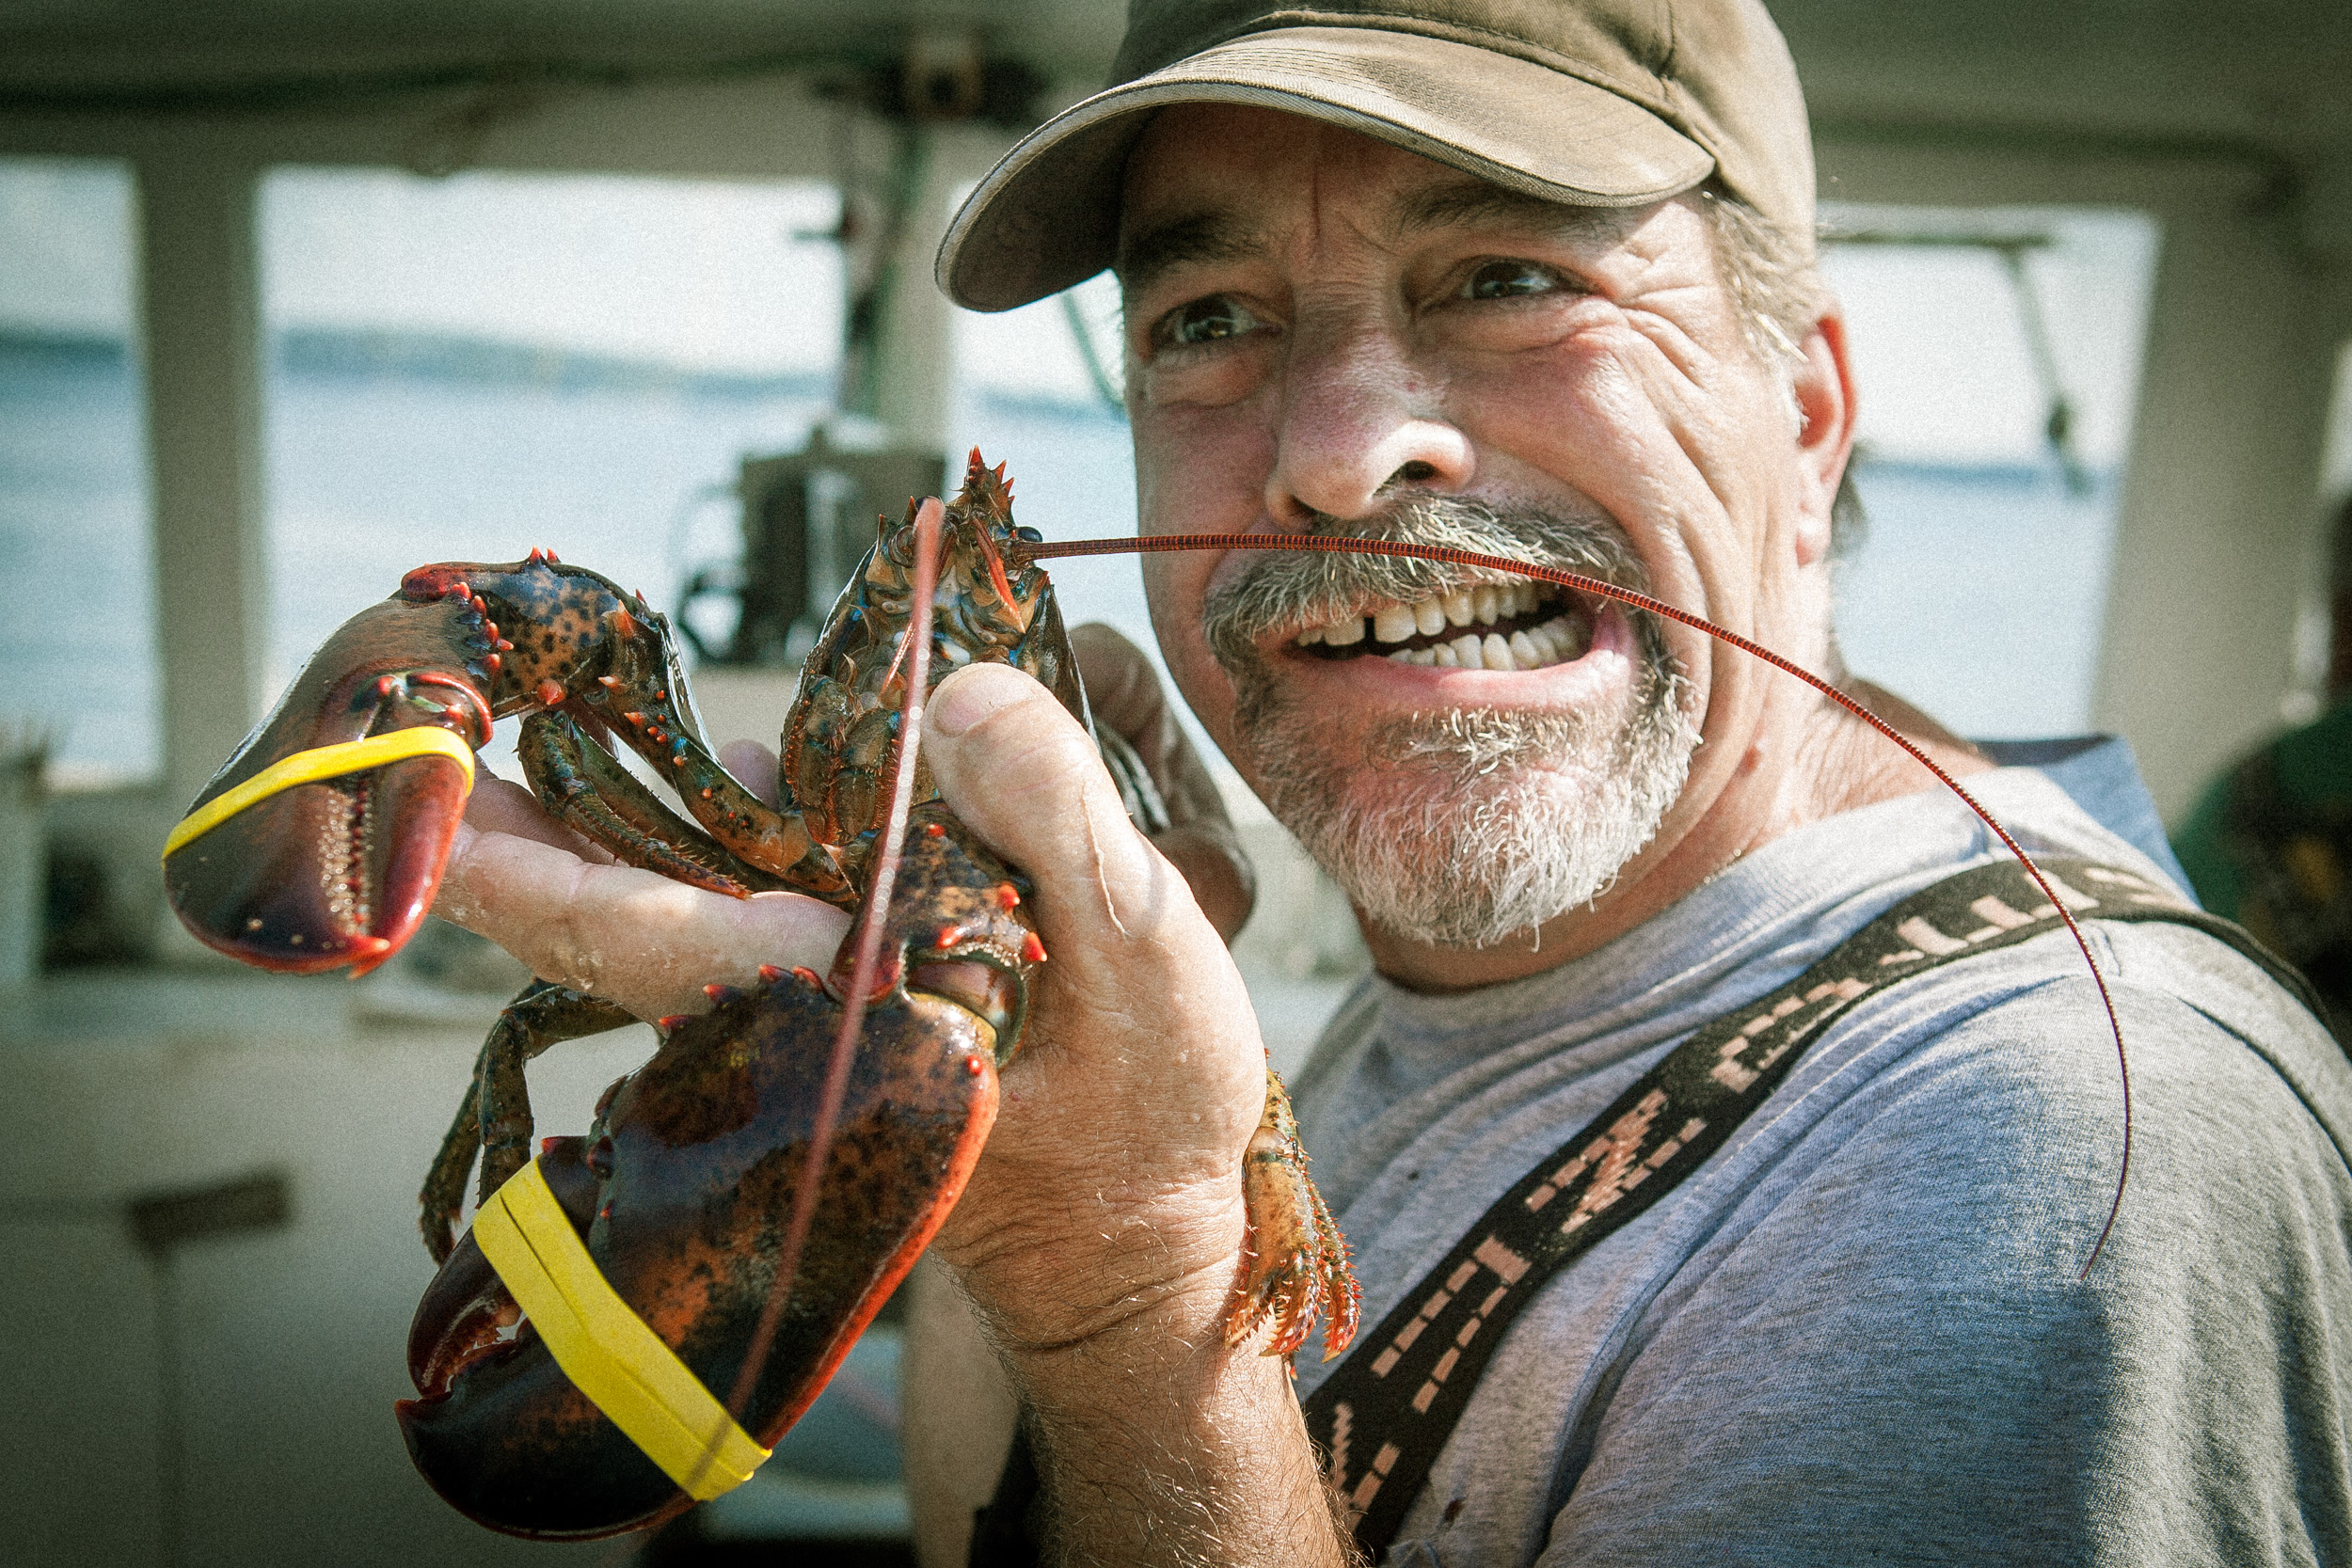 Lobsterman, shot by Steven P. Widoff